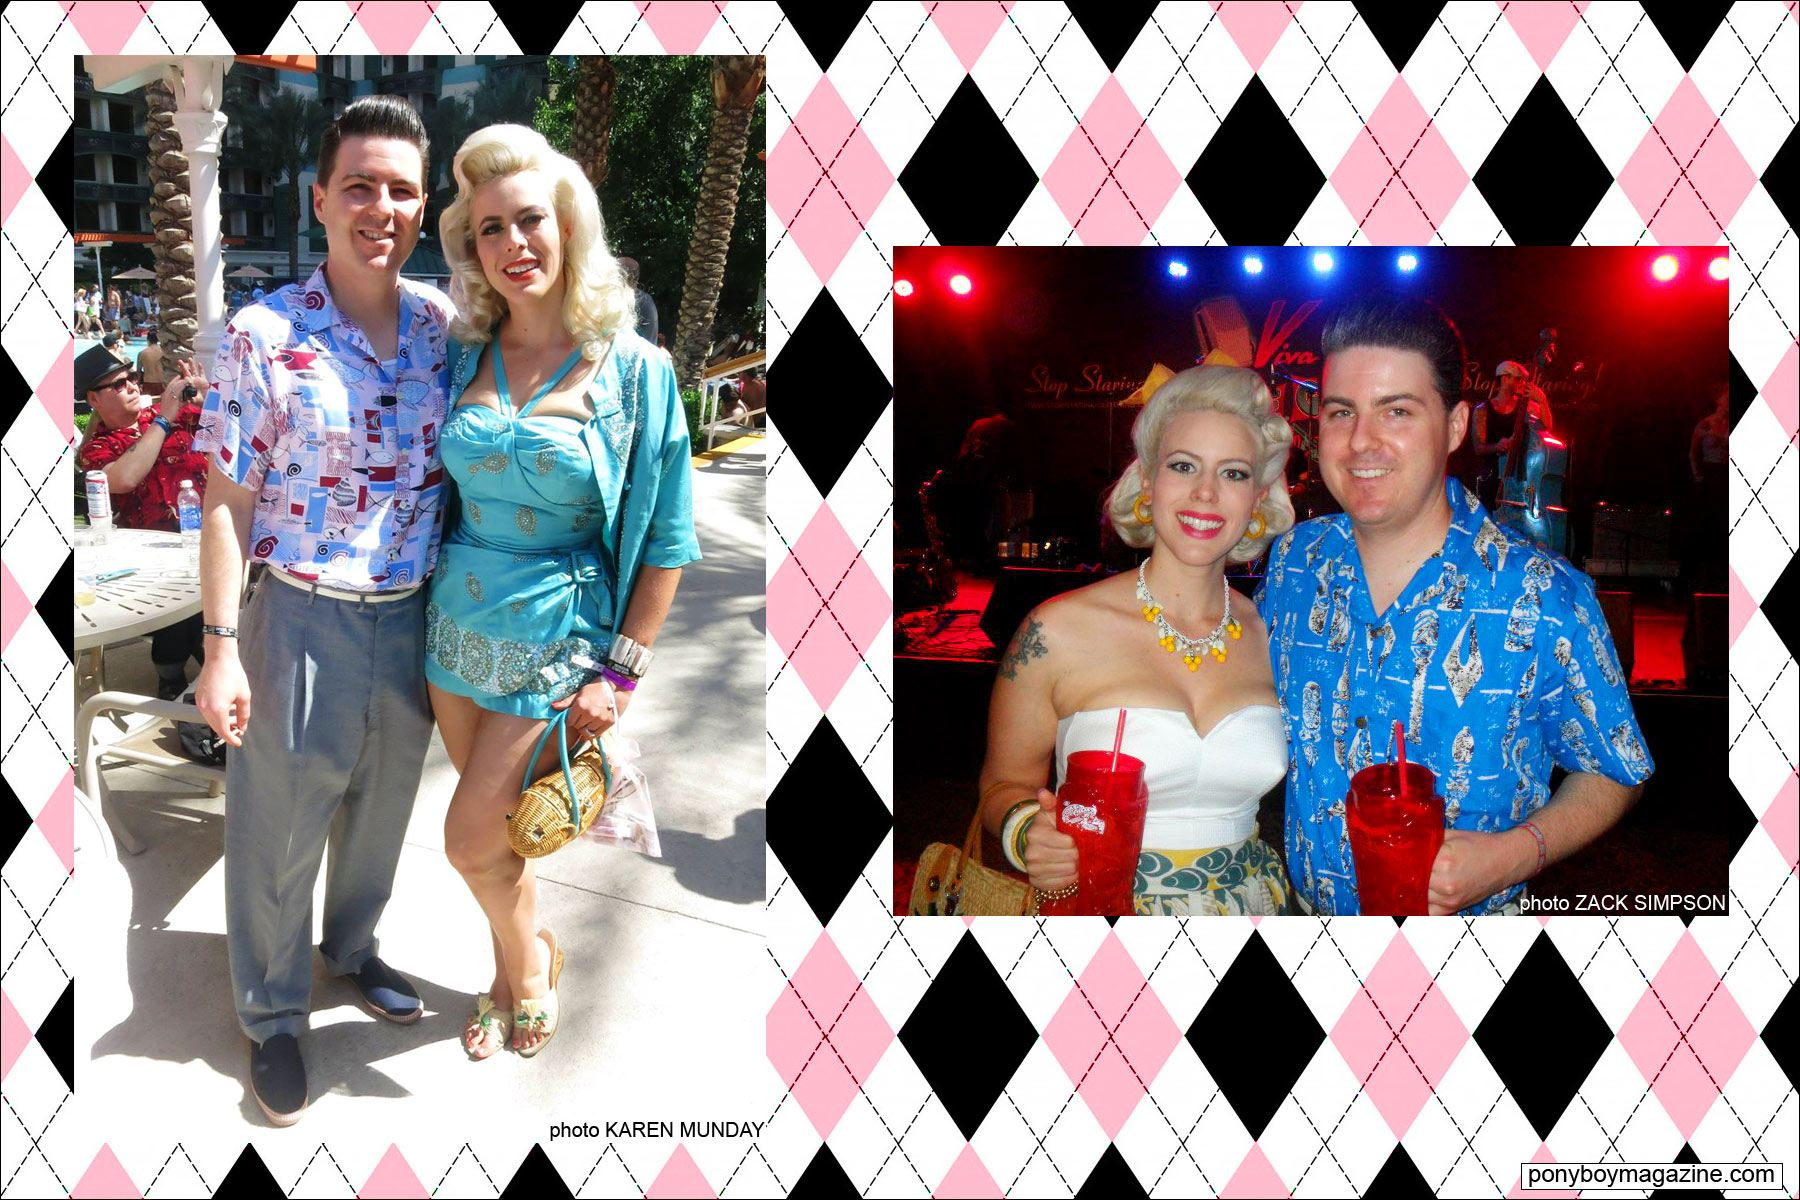 Photos of The Rockabilly Socialite at Viva Las Vegas with husband Zack Simpson. Ponyboy Magazine.